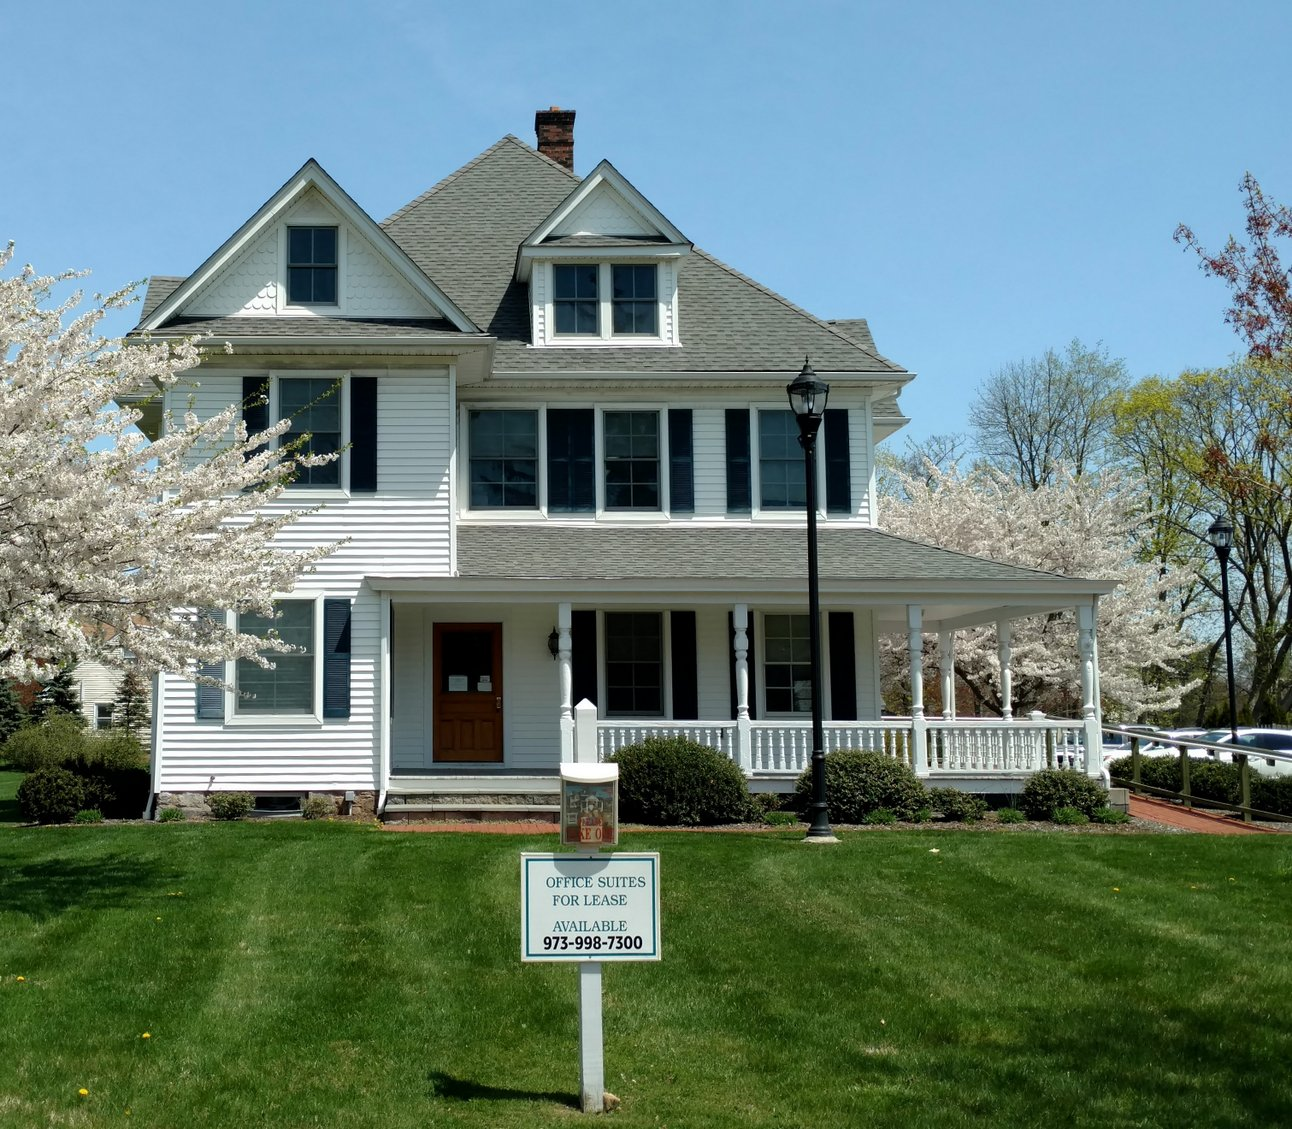 Custom Home Builder and Remodeler, 109 Main Street, Succasunna, NJ